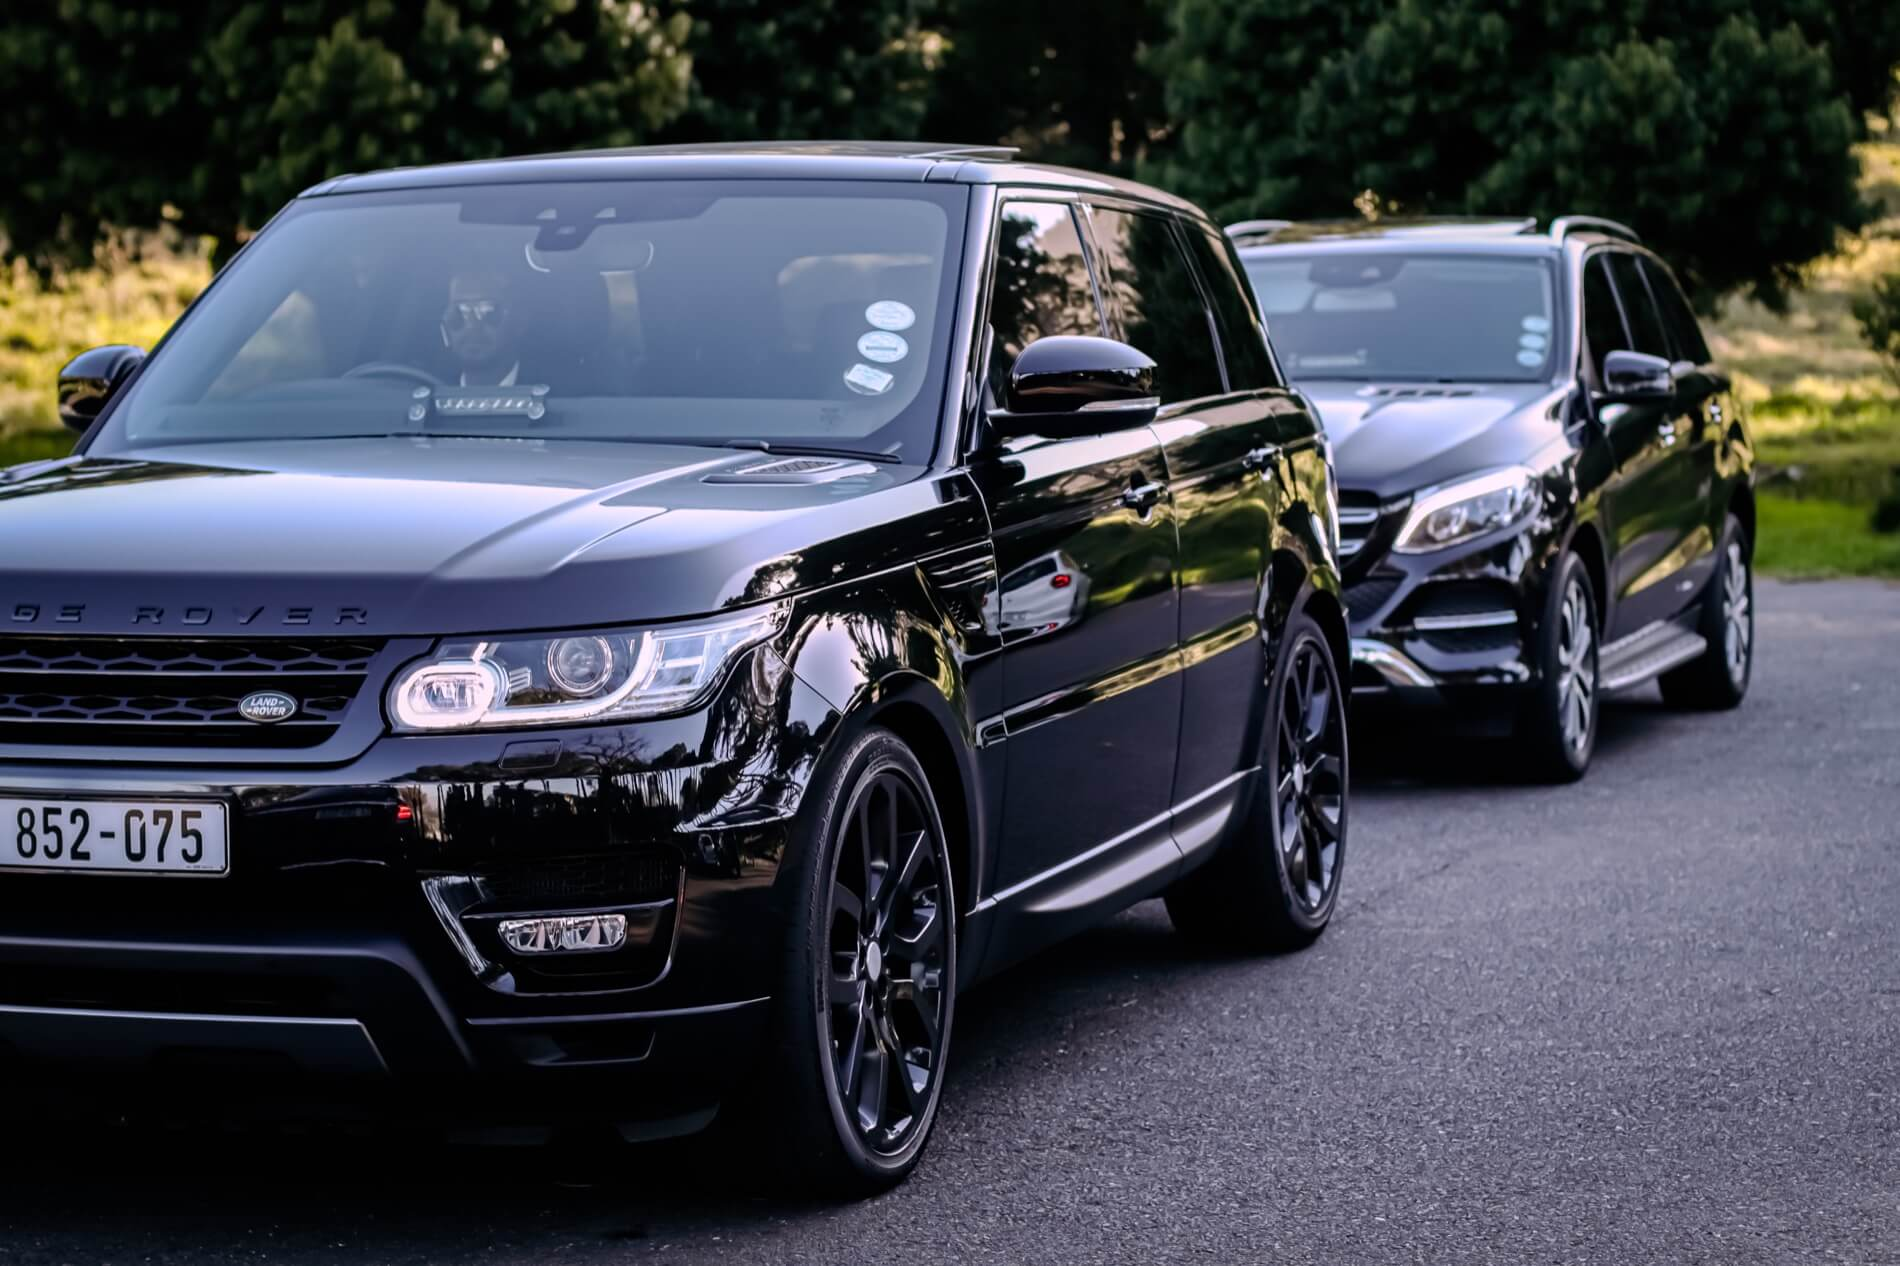 IMG_0436-SOHO-VIP-Luxury-Chauffeurs-in-Cape-Town-South-Africa